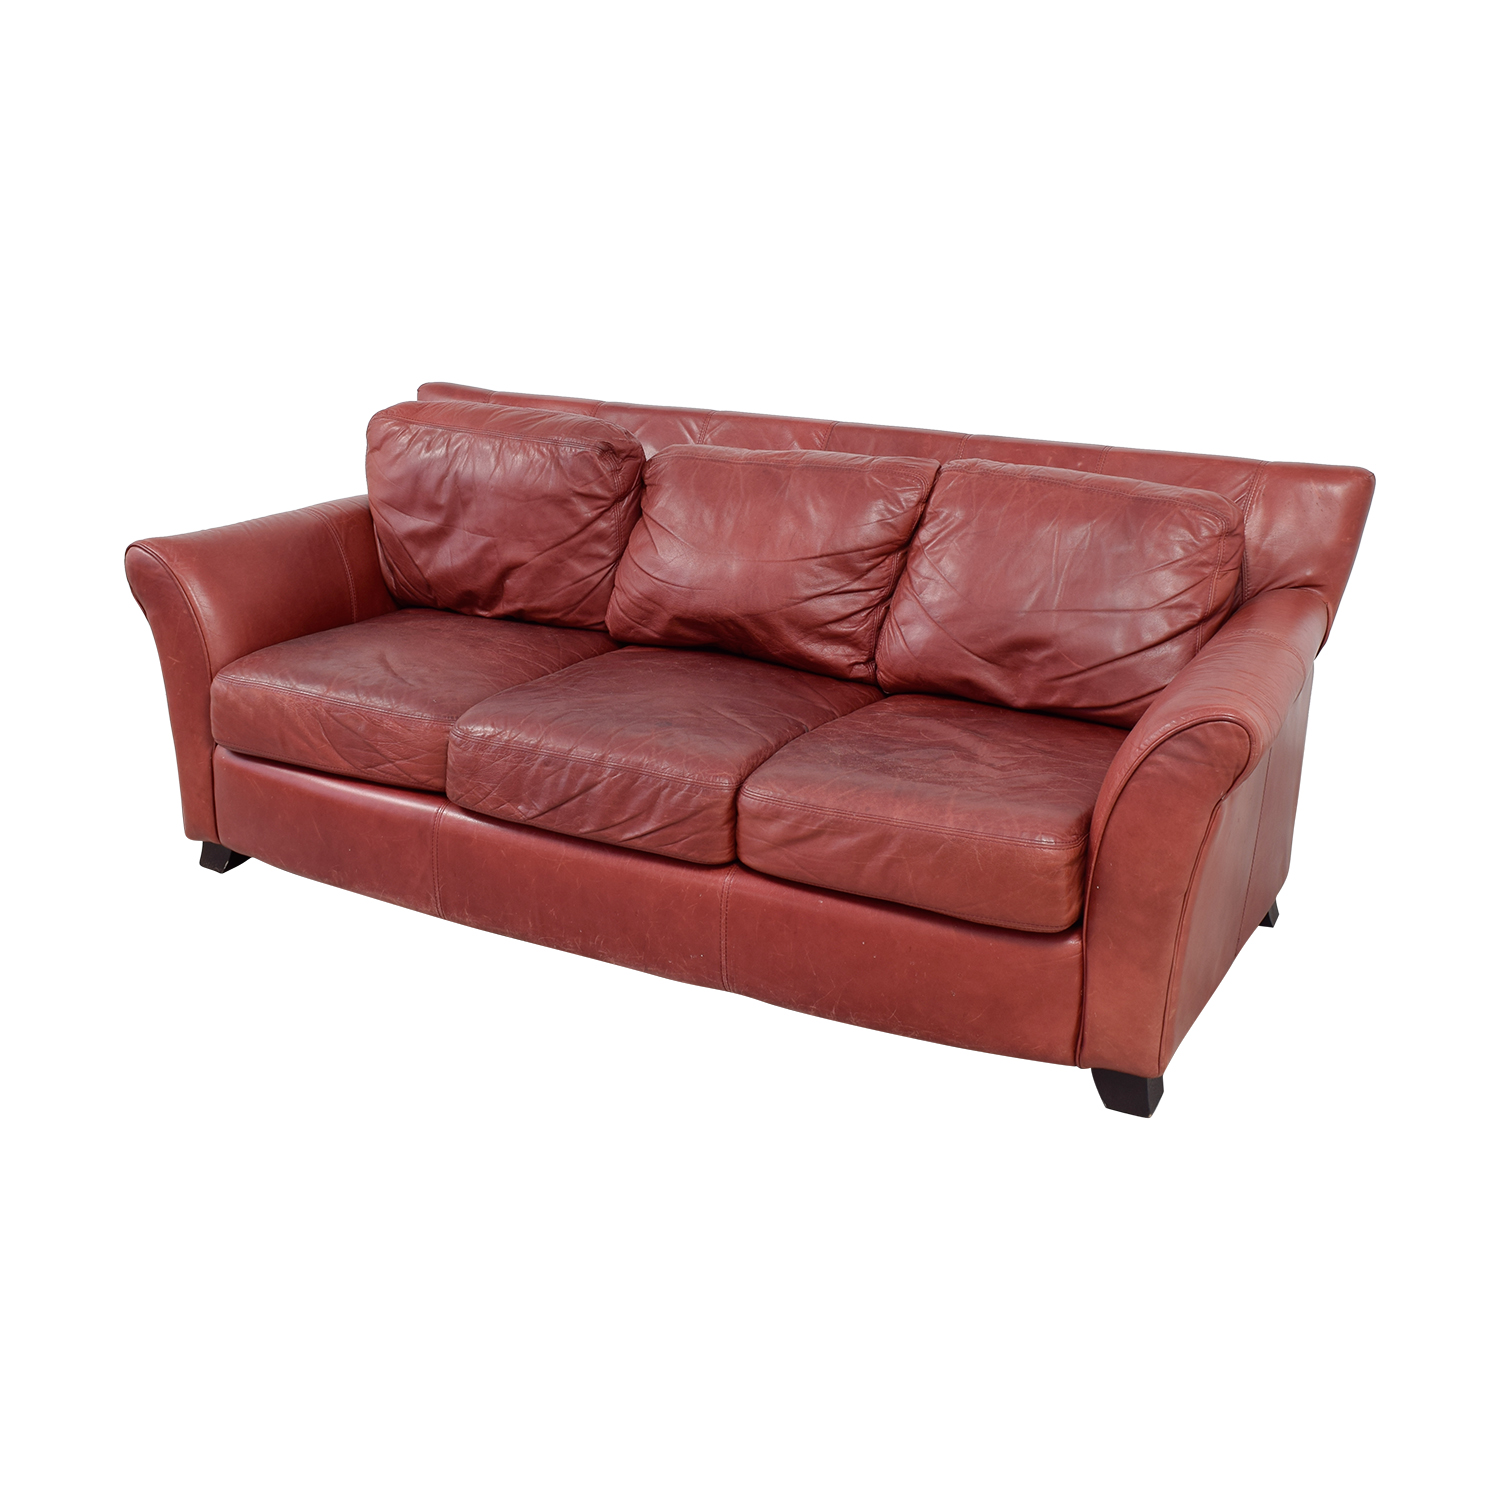 Palliser Palliser Red Leather Three-Cushion Sofa used